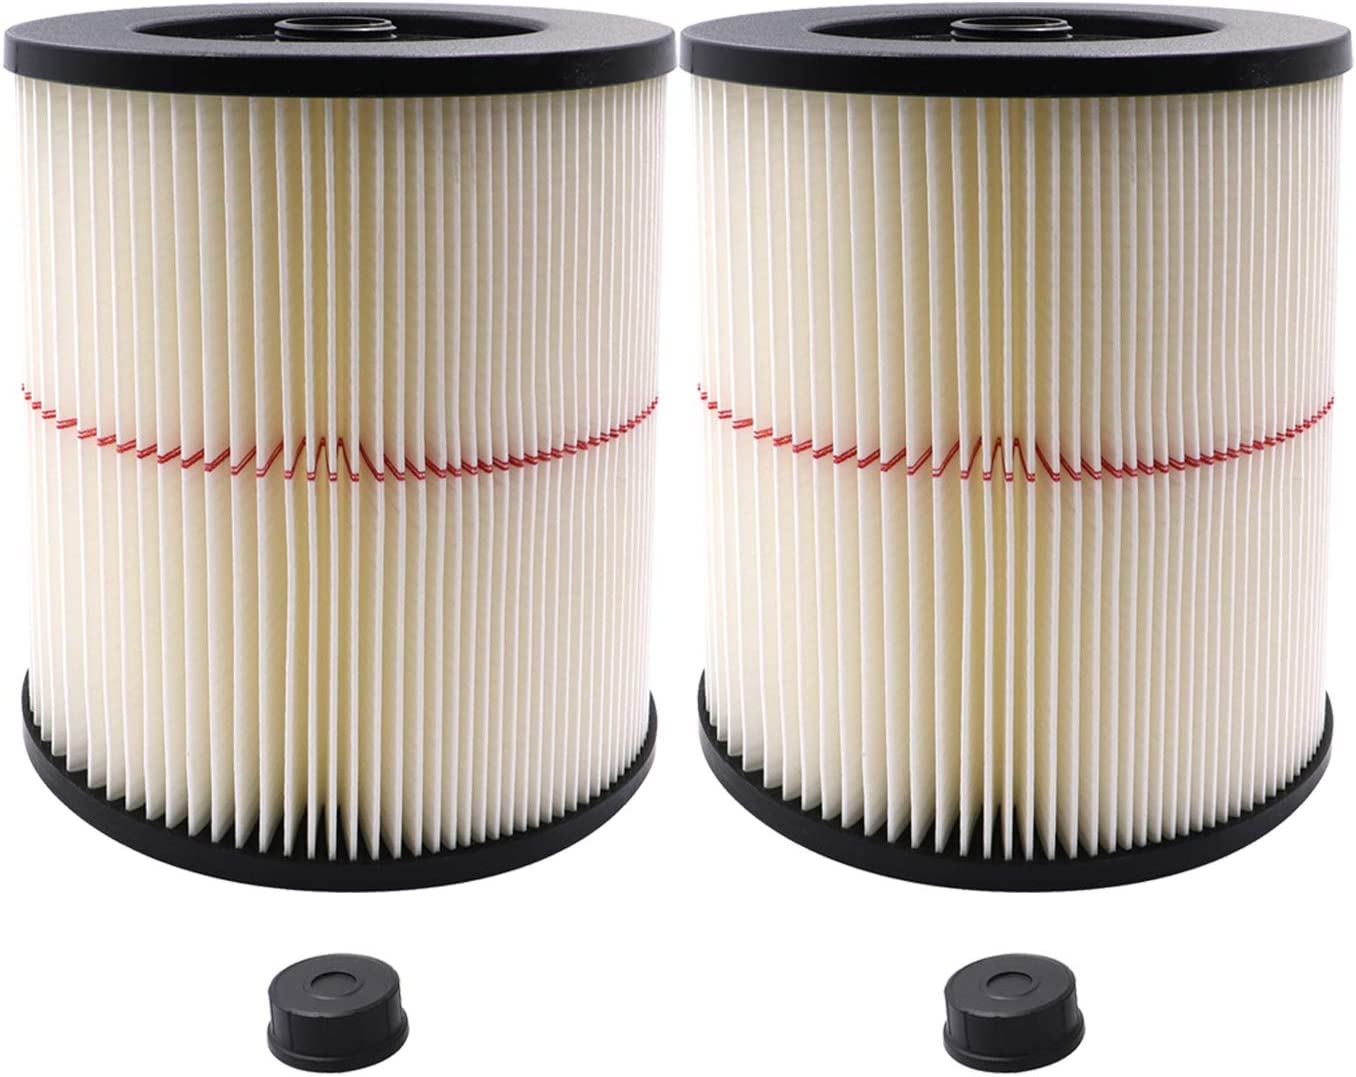 Wet Dry Cash special price Vacuum Cleaner Filter for Craftsman 2 Pa 17816 Shop Fixed price for sale Vac